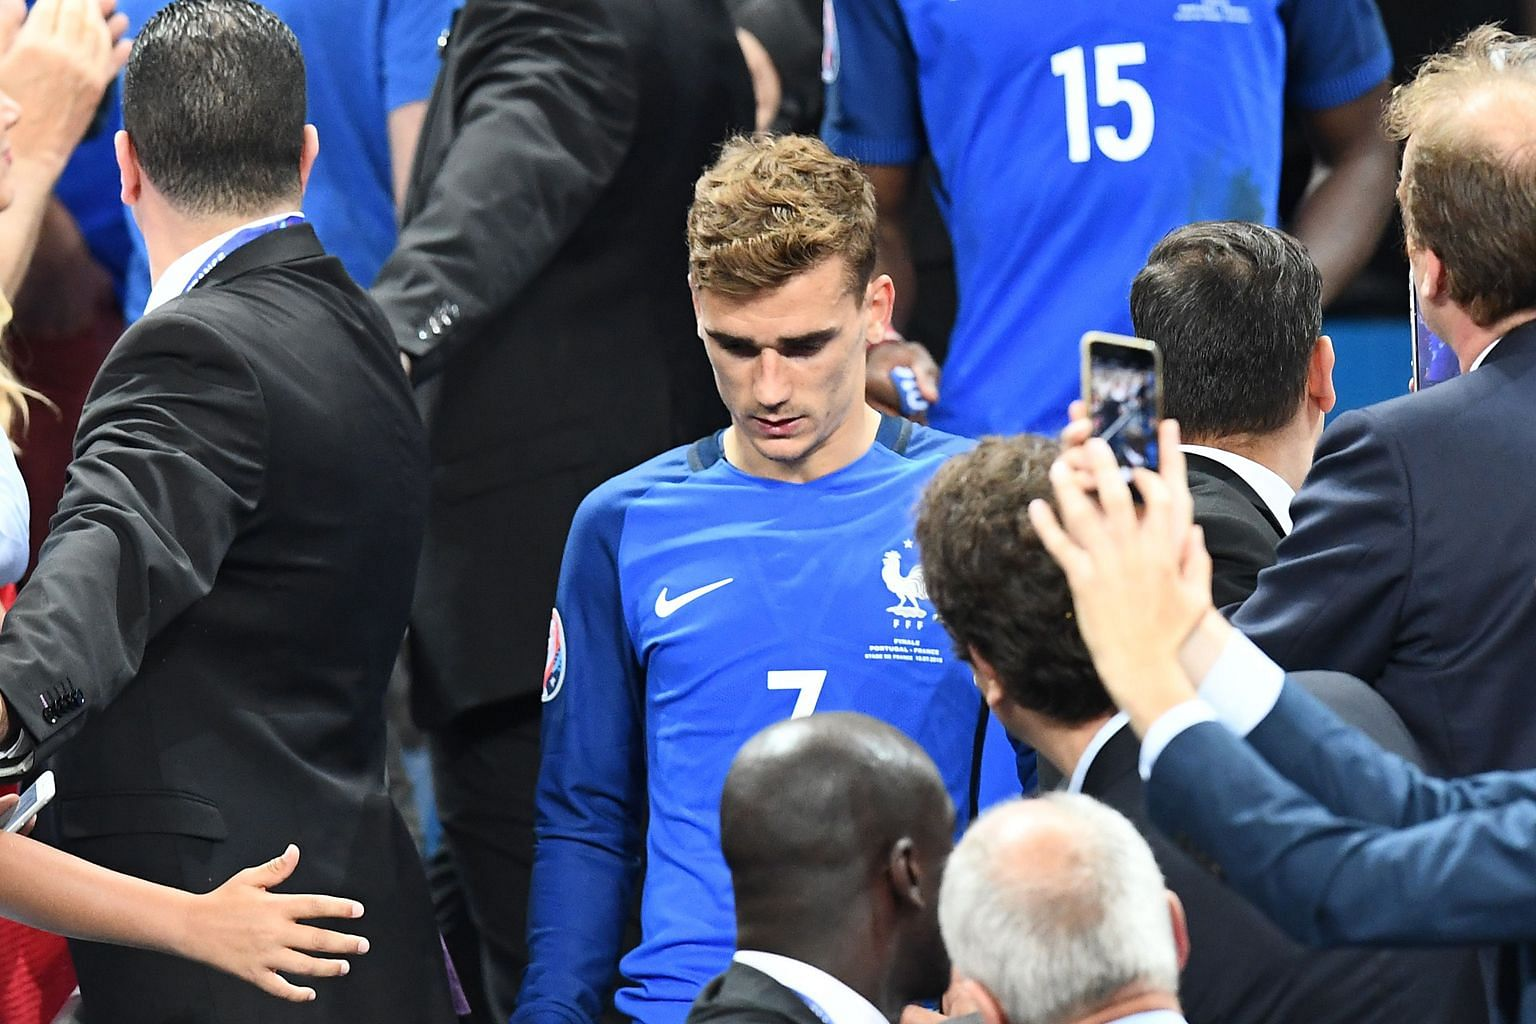 France forward Antoine Griezmann, who scored six goals at Euro 2016, shows his disappointment after the home side were beaten 1-0 by Portugal in the final at the Stade de France in Saint-Denis, north of Paris, on Sunday. Devastated French supporters